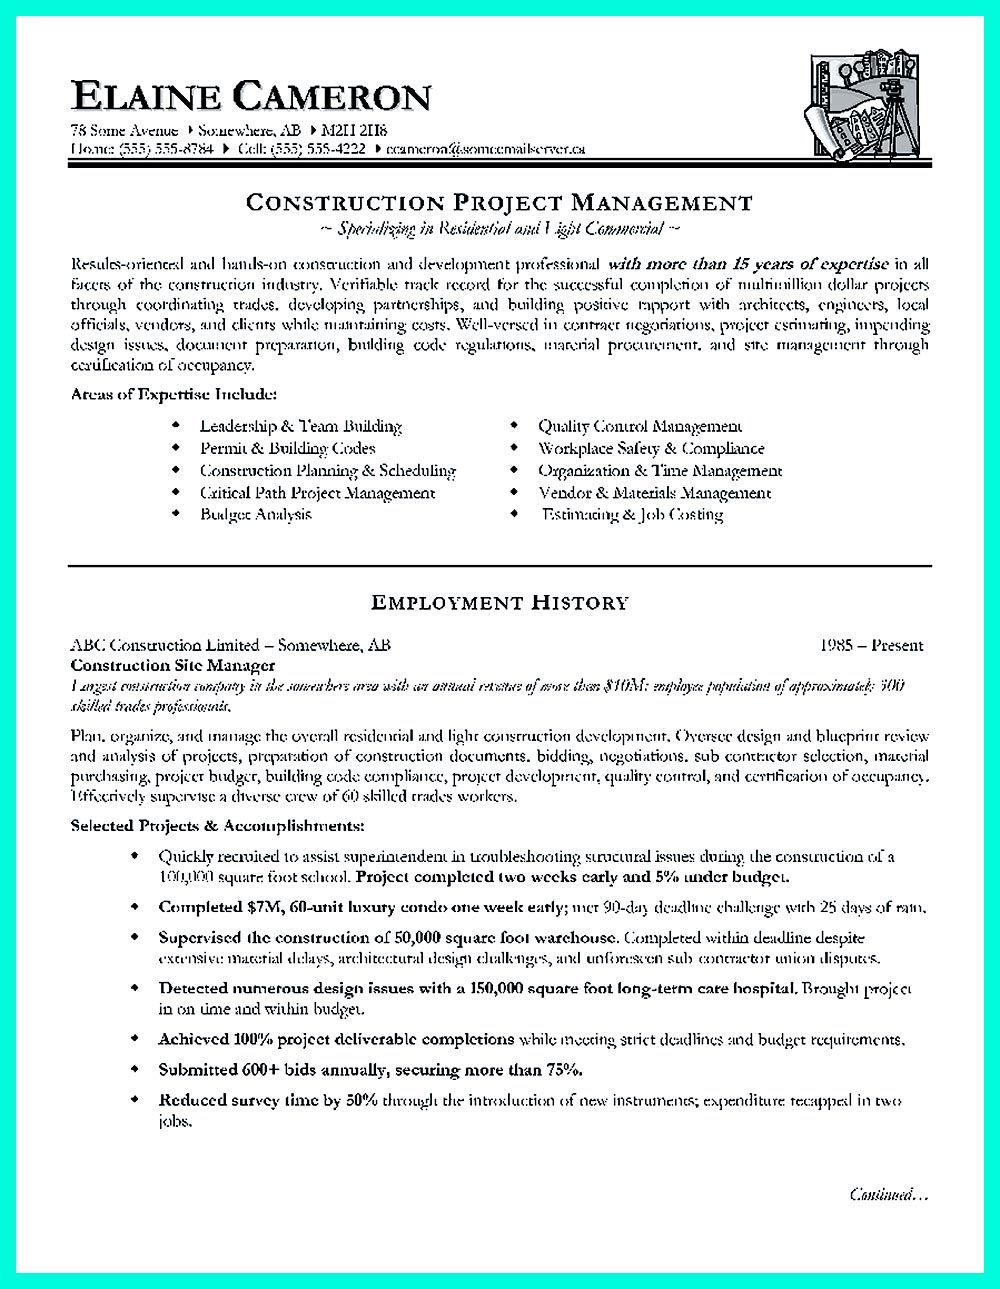 Construction Project Manager Resume For Experienced One Must Be Made With  Professional Profile, Education, Skills And Abilities Including Employment  H... ...